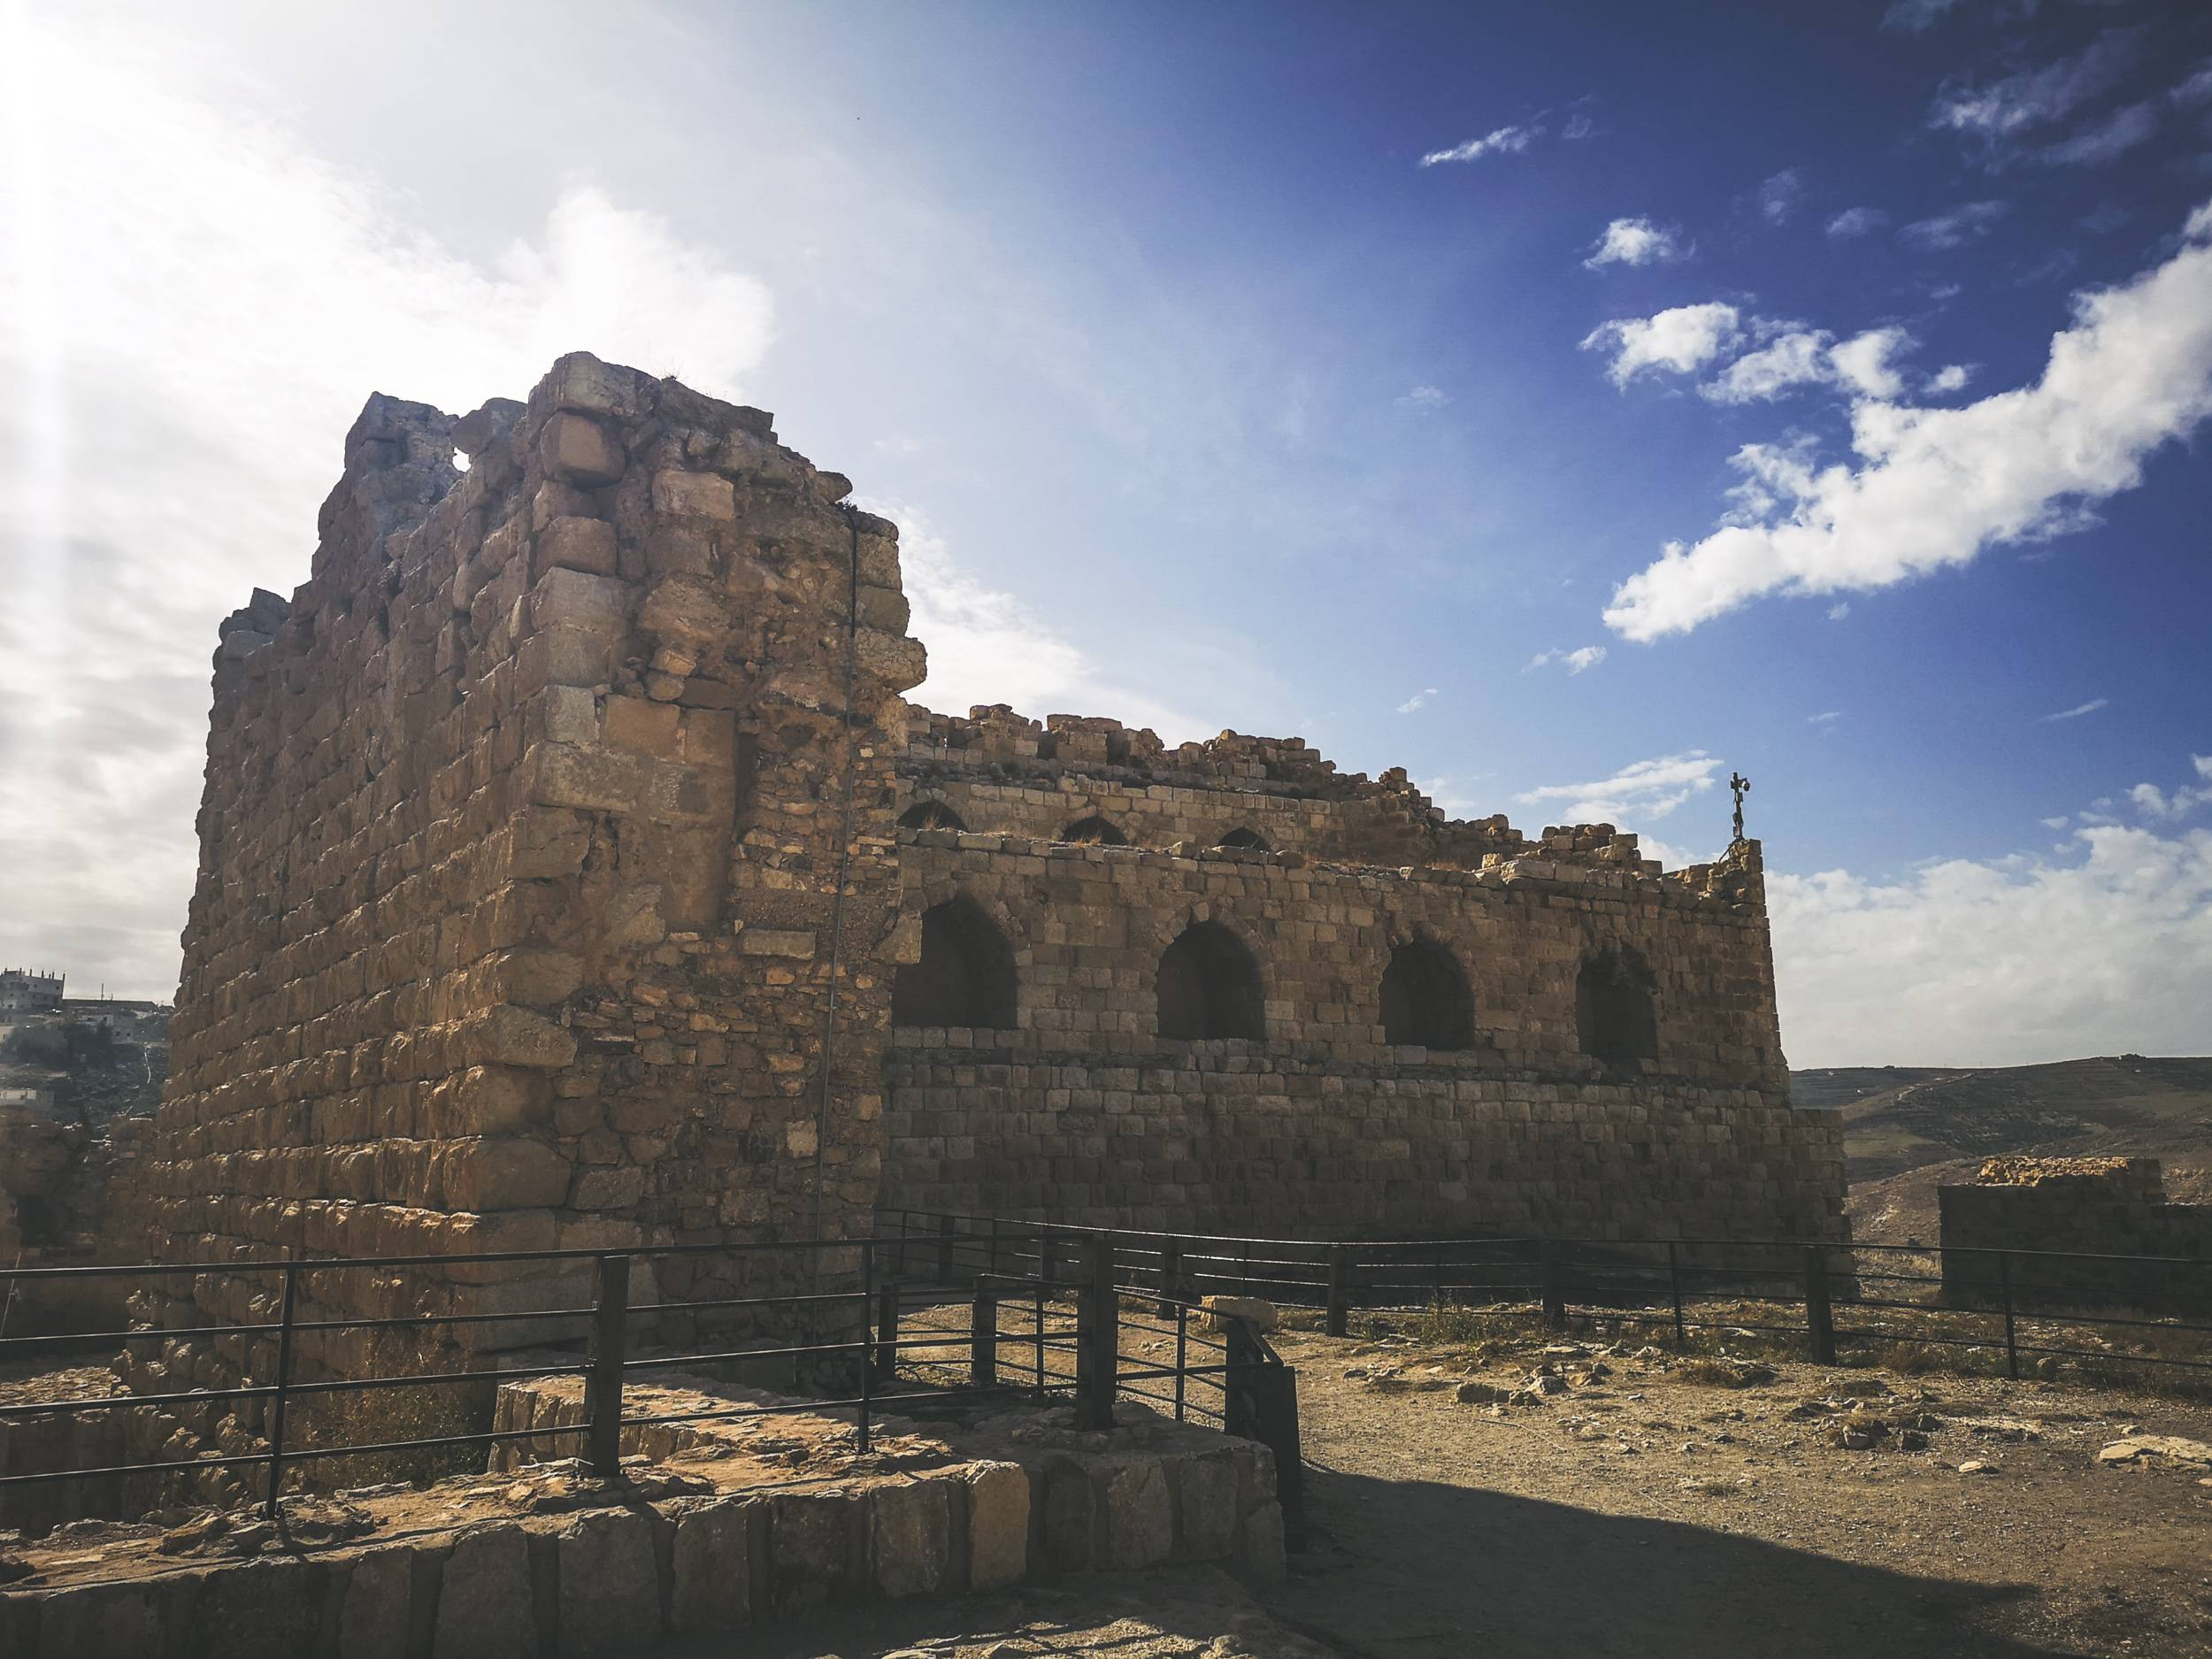 The ruins of palace in al-Karak castle. Photo by Alis Monte [CC BY-SA 4.0], via Connecting the Dots